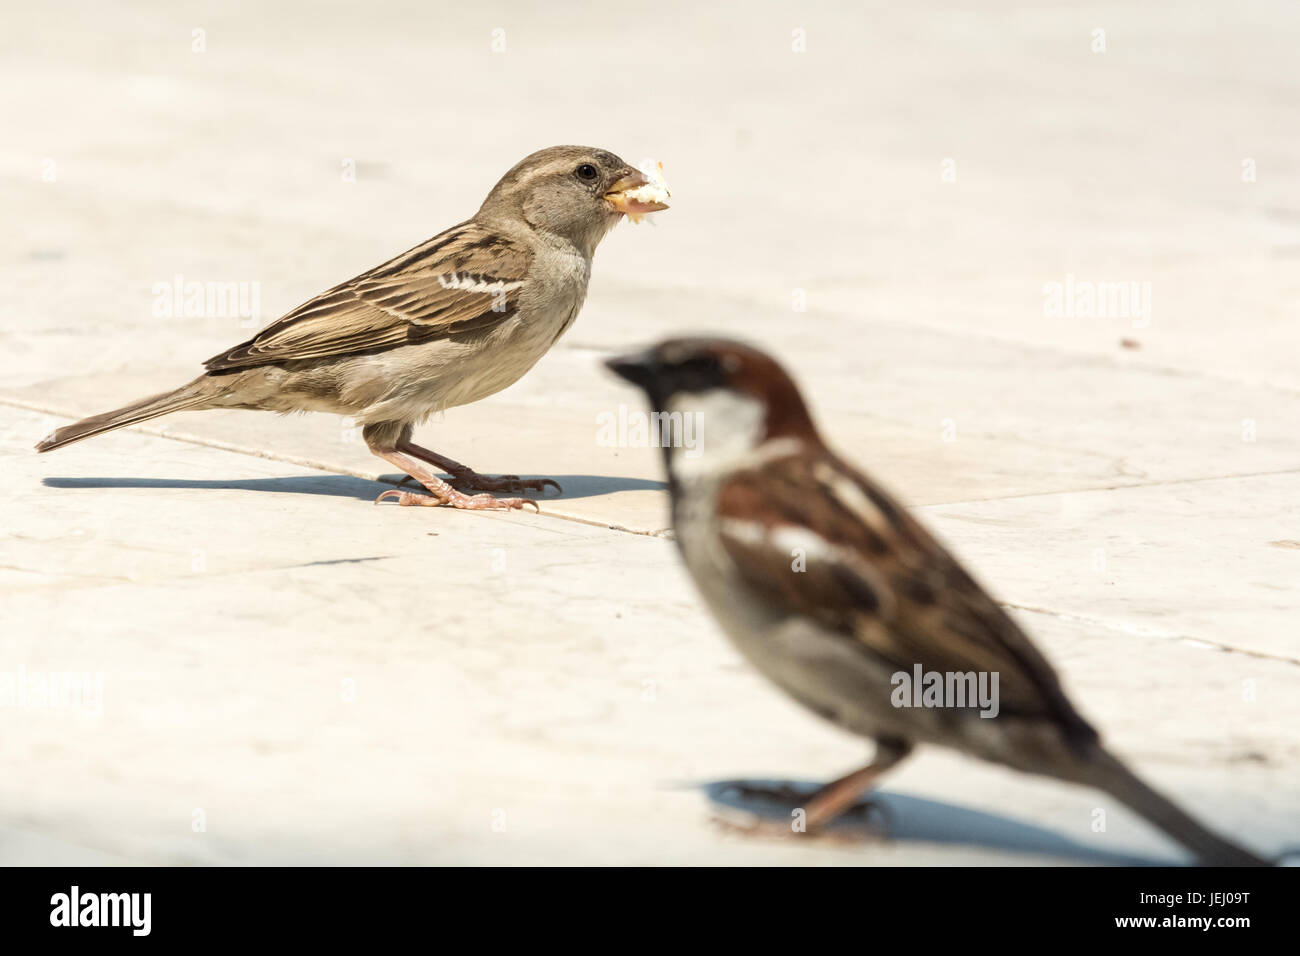 Couple of sparrows waiting for more bread as the female already has a piece in the beak - Stock Image